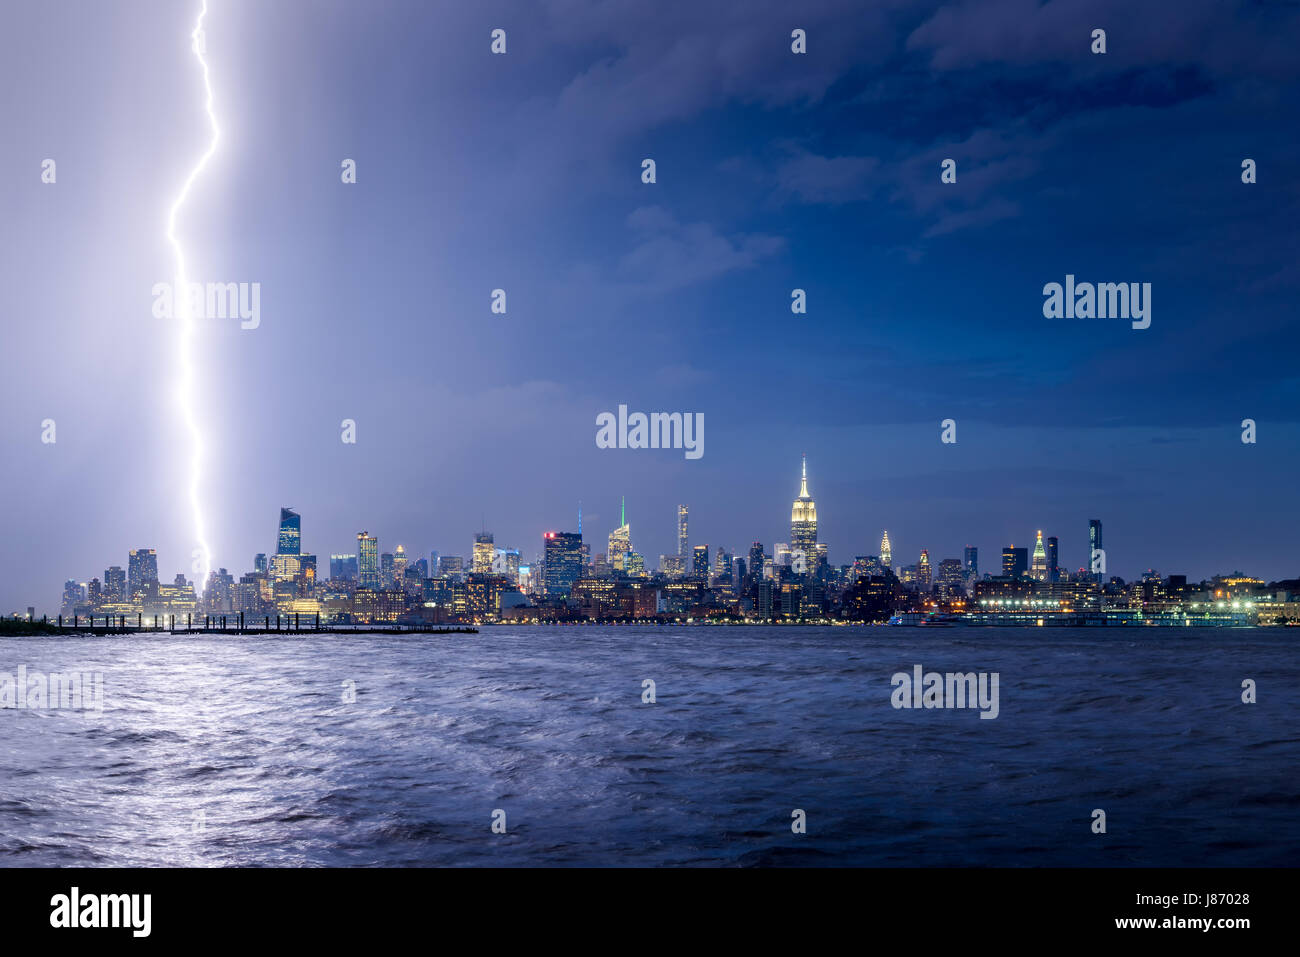 Lightning striking Midtown New York City skyscrapers at night. Stormy skies over Manhattan from the Hudson River - Stock Image